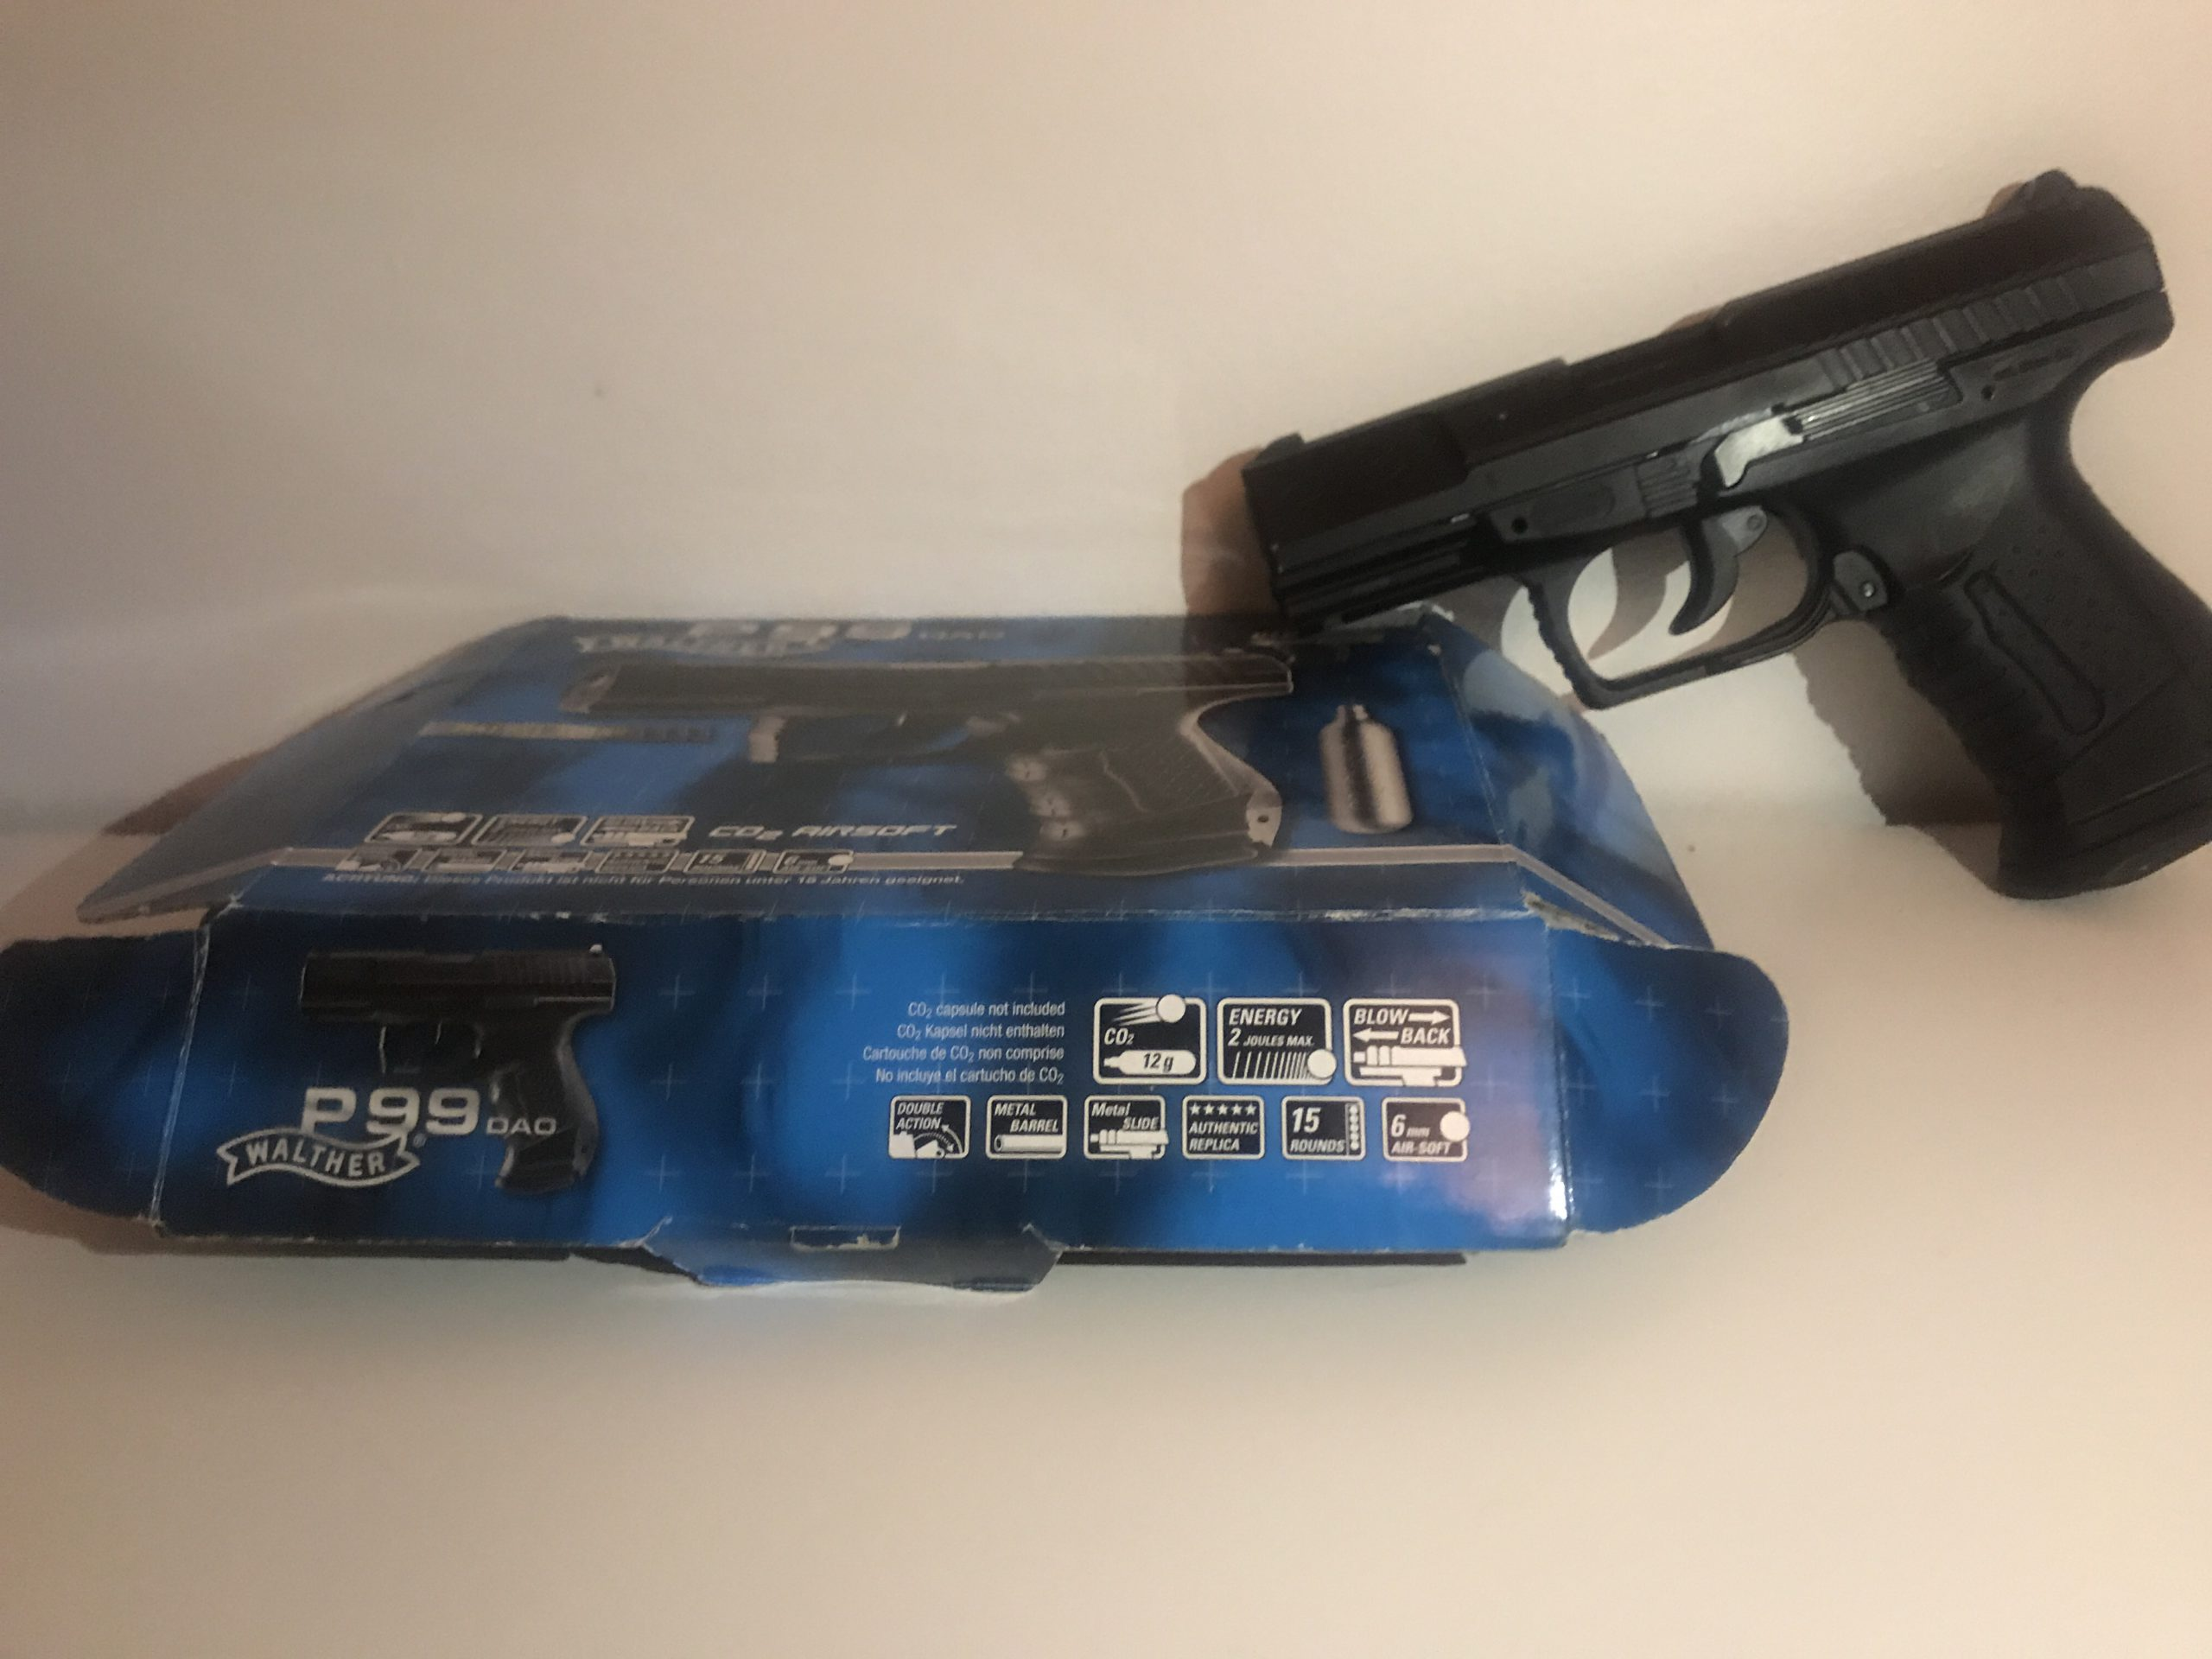 P99 2 joules